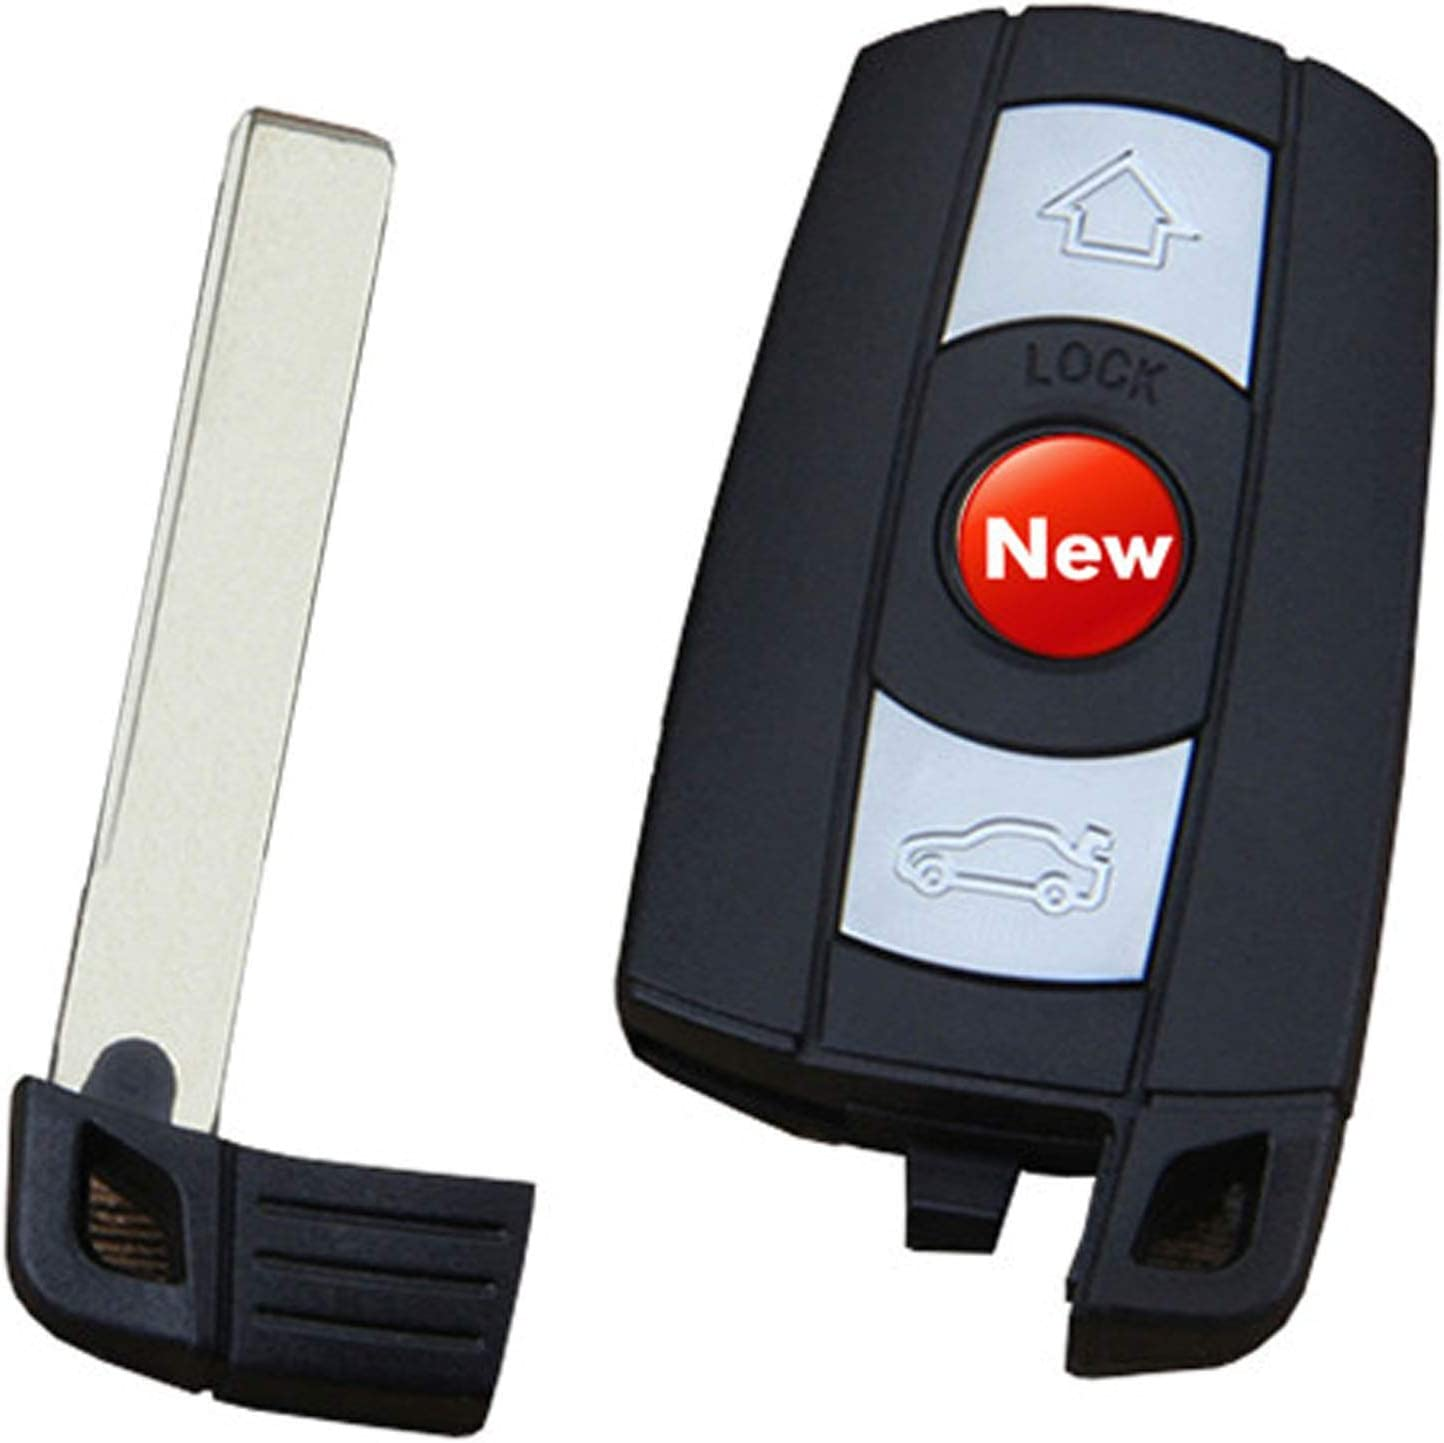 New Replacement for Key Fob Case Housing Keyless Entry Remote Key Fob Fit for BMW 1 3 5 6 7 E90 E93 E92 M3 M5 X3 X5